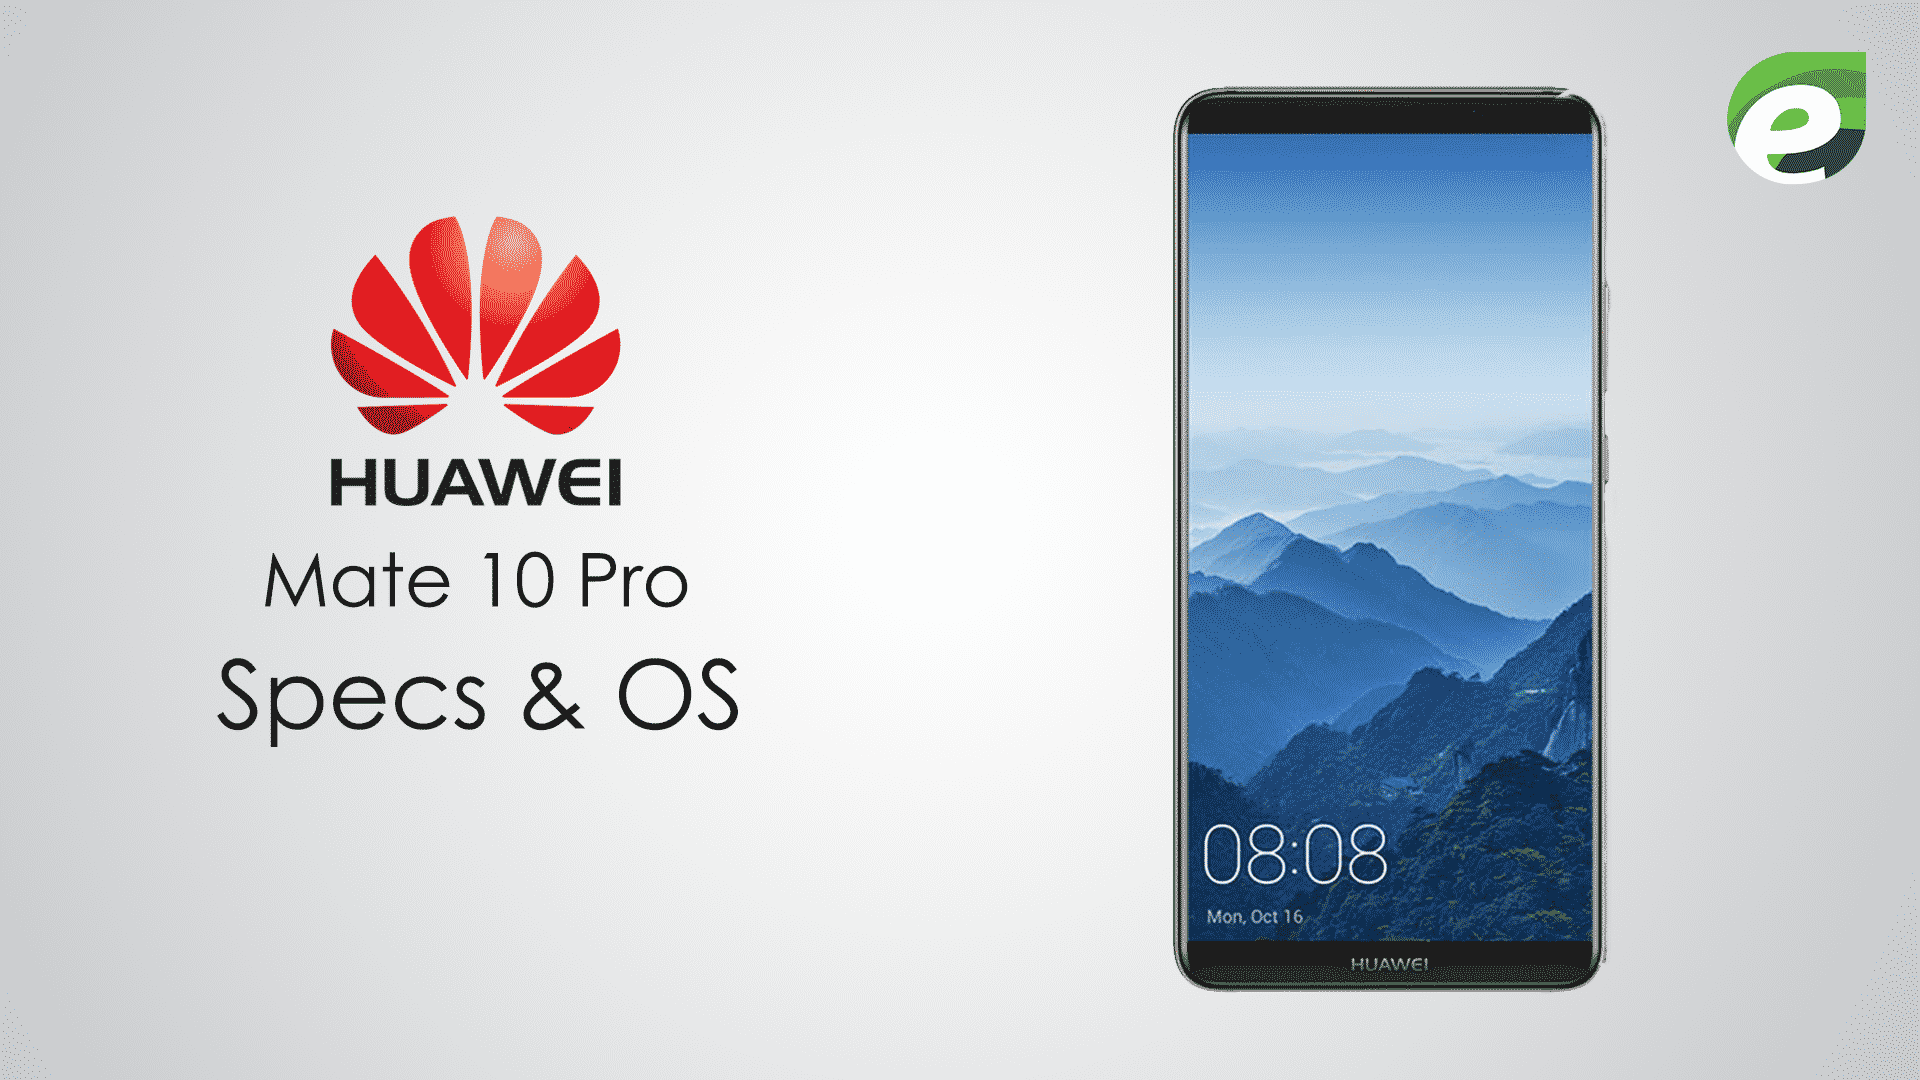 huawei mate 10 pro- specifications